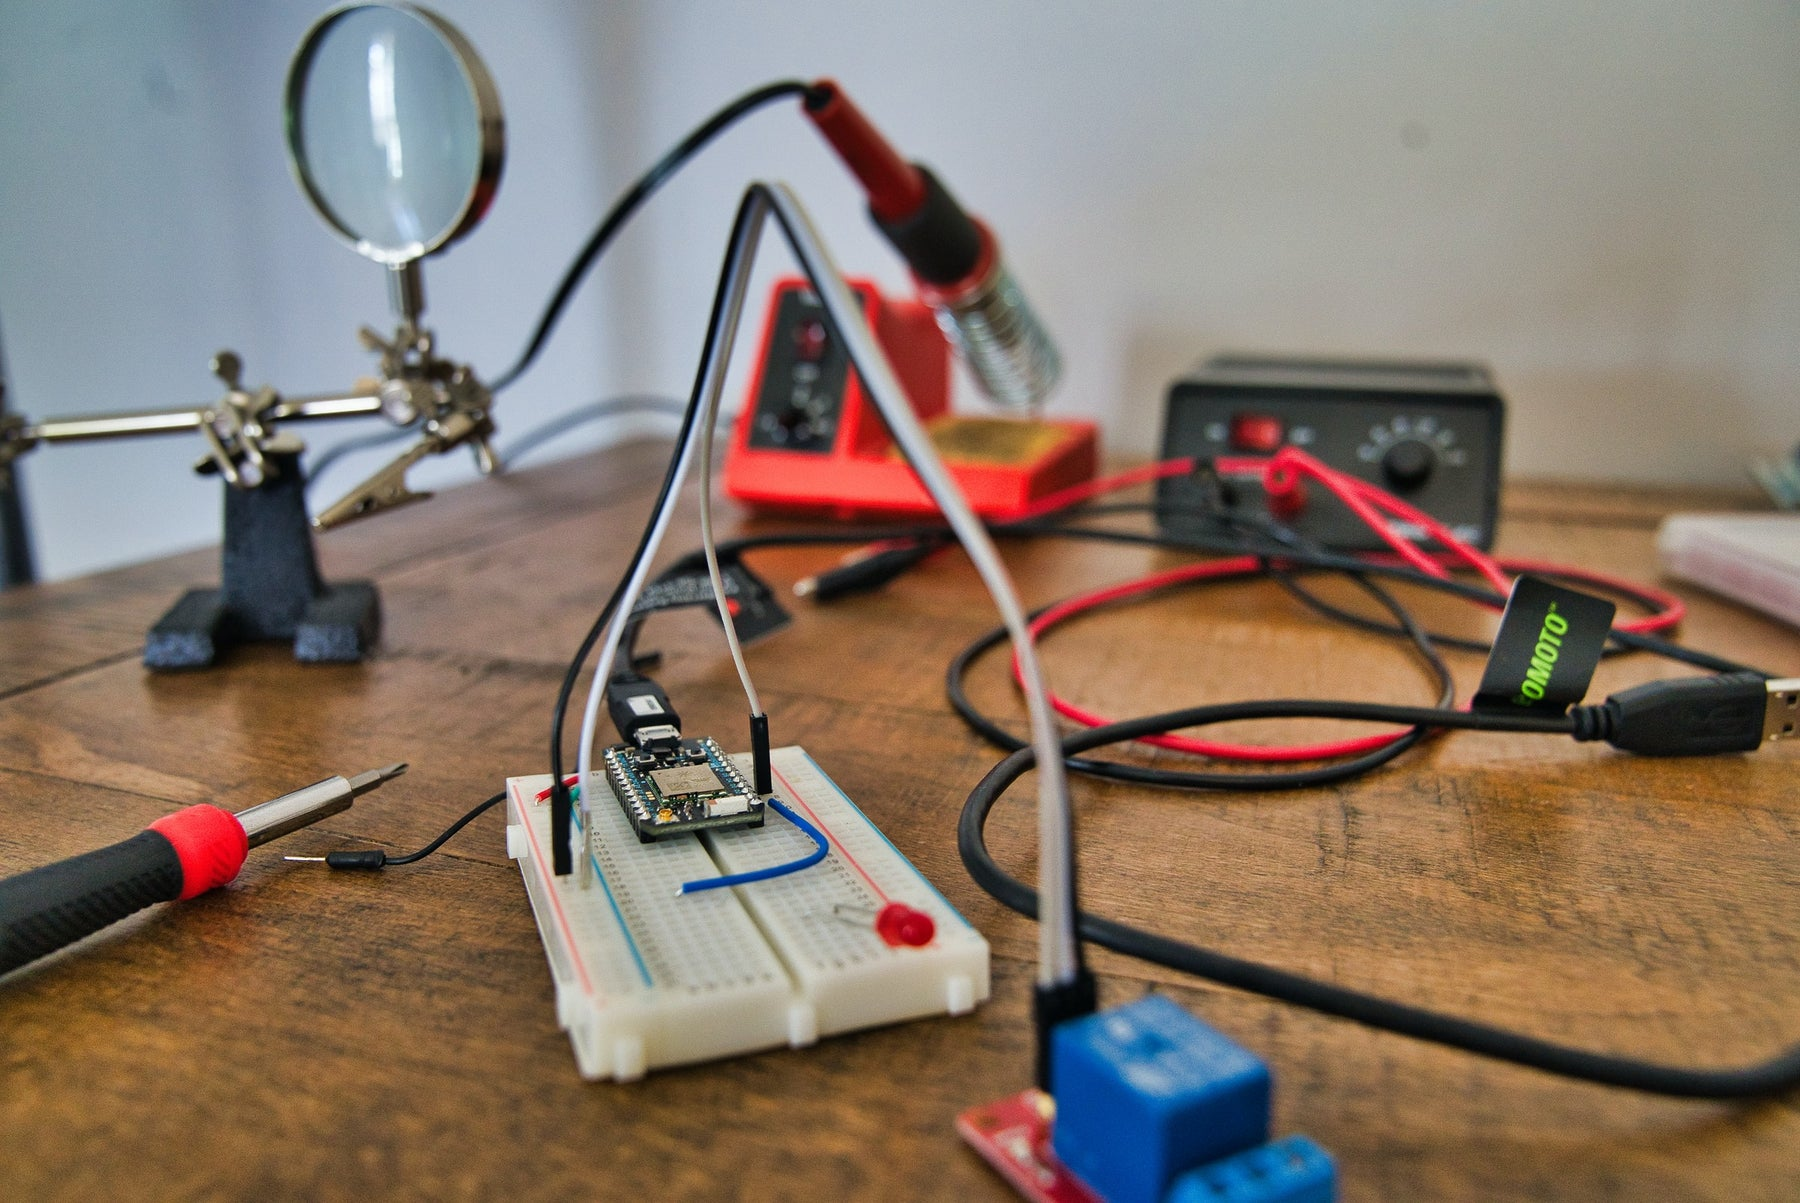 Soldering iron with red handle and other essential electronic equipment arranged on a table